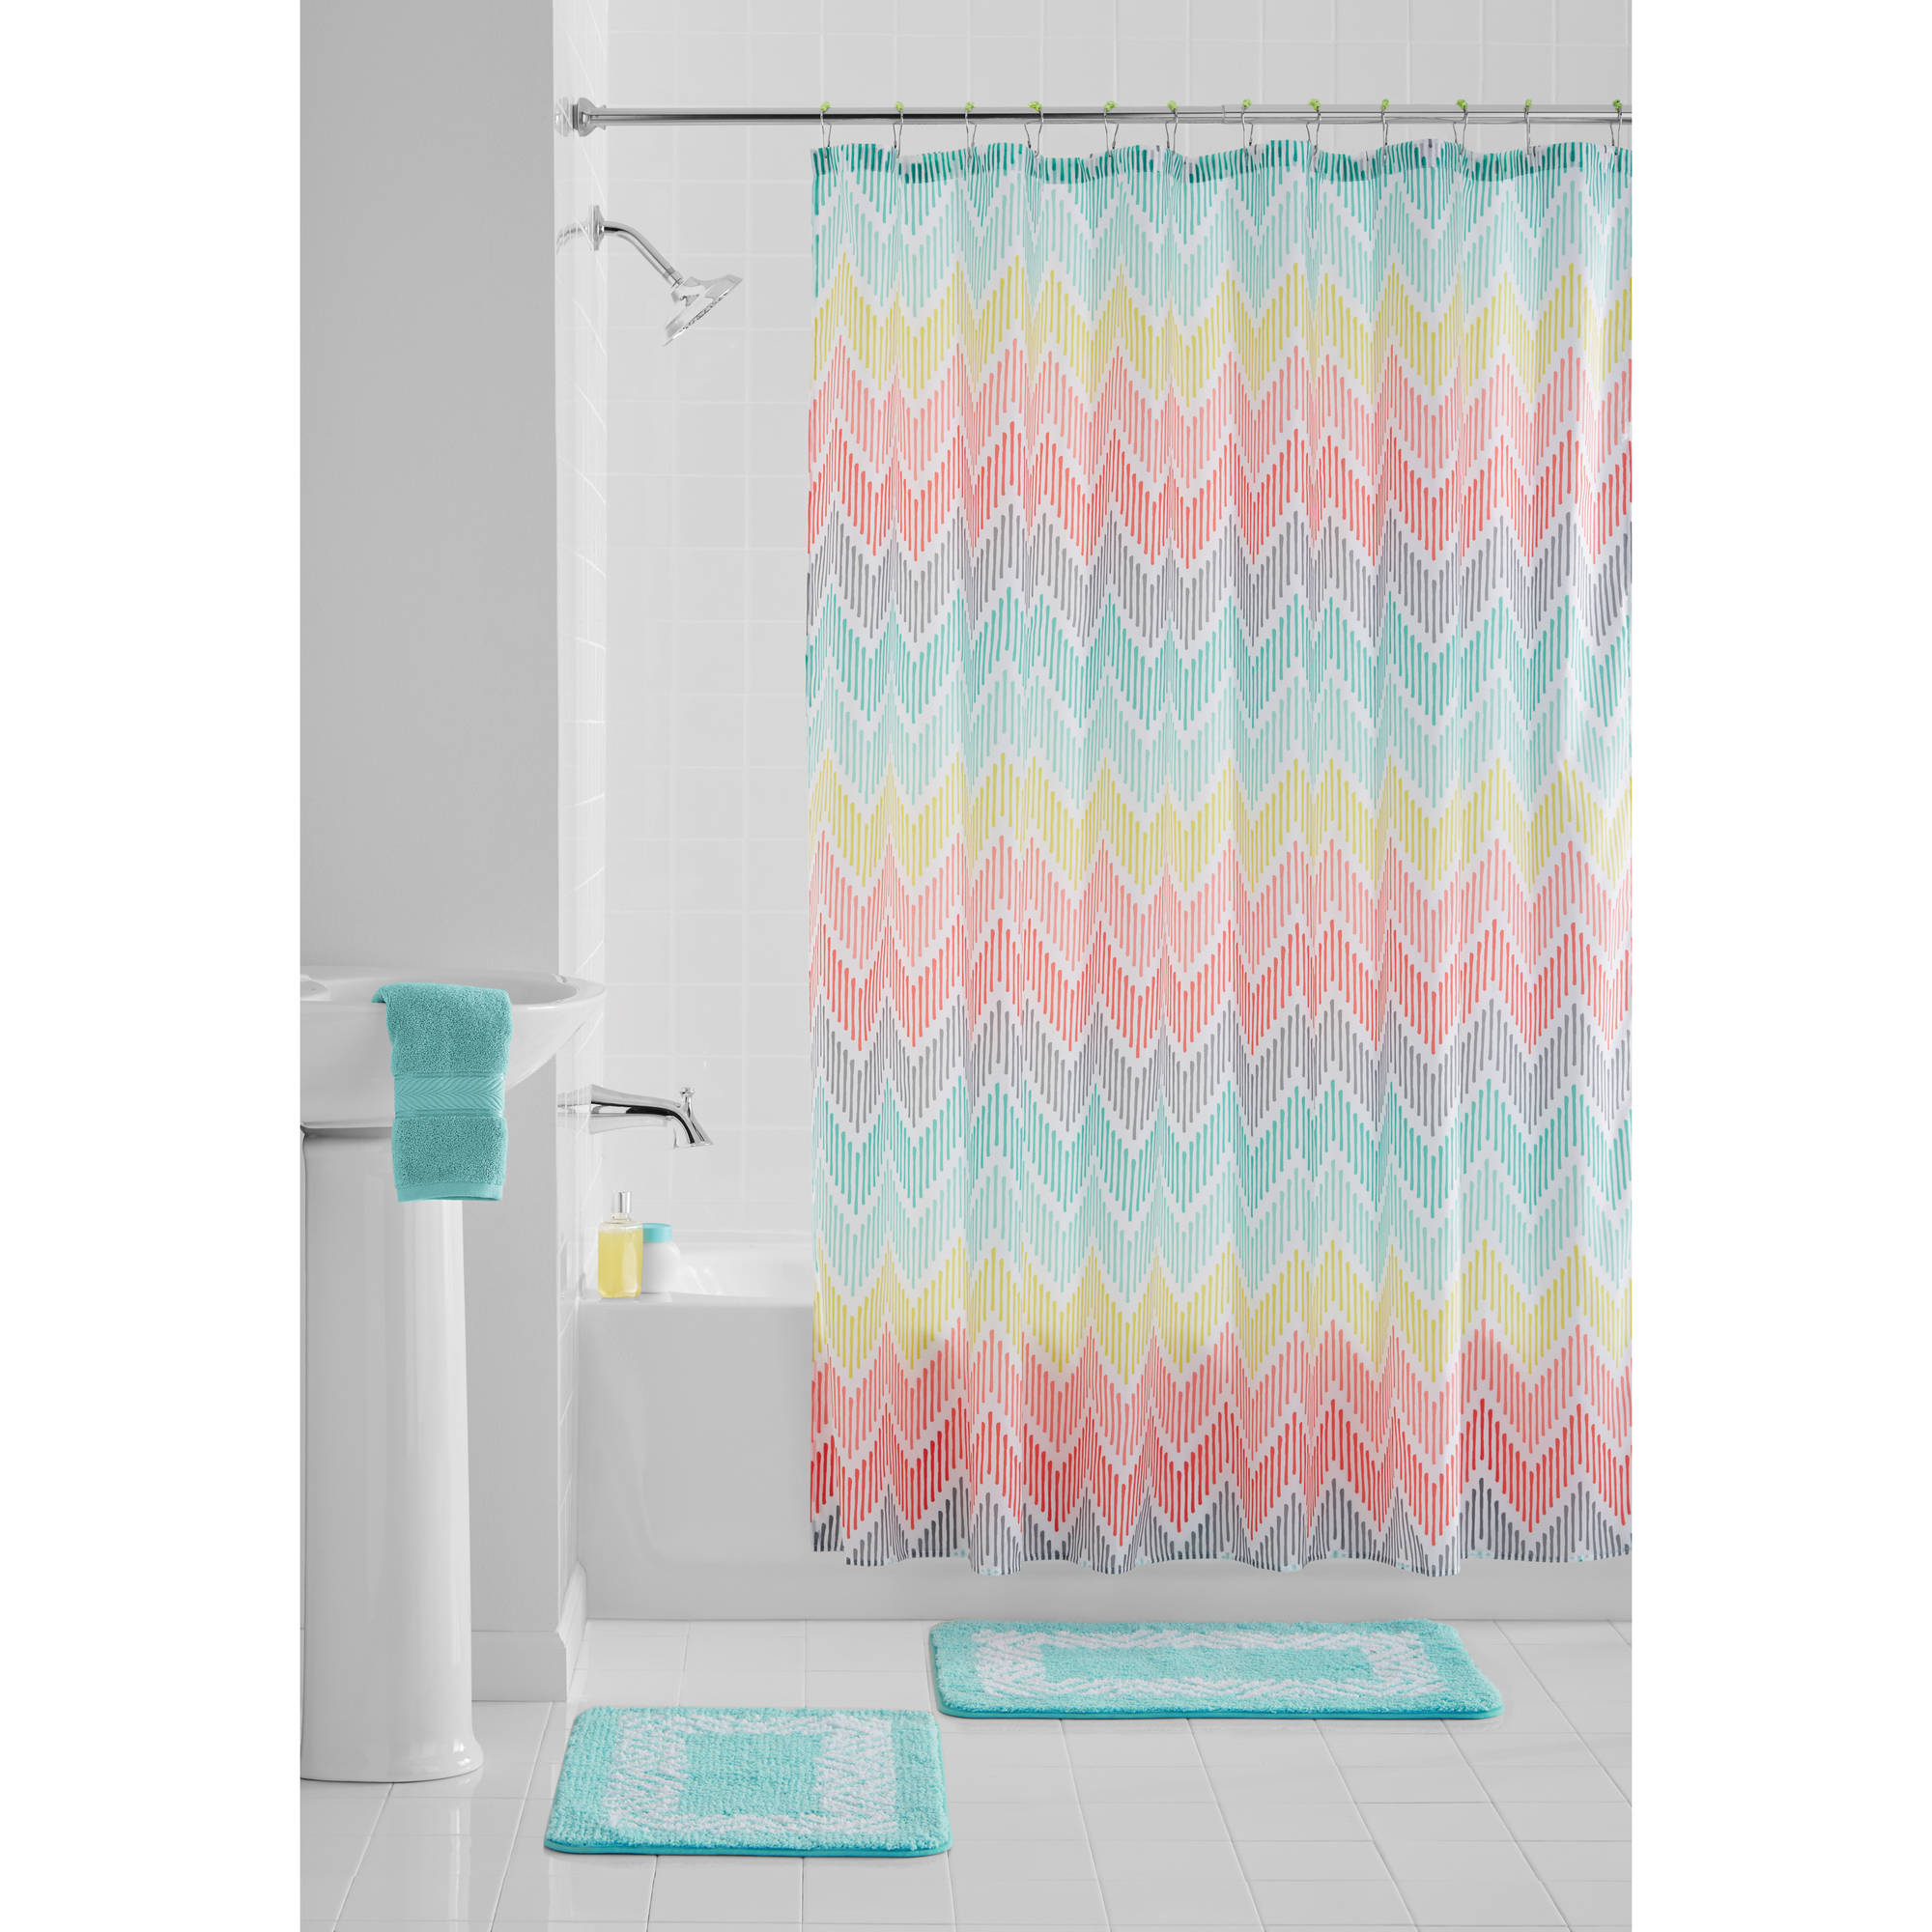 Mainstays Multi-Color Chevron 15-Piece Polyester Bath in a Bag Set, Shower Curtain and Bath Rugs Included